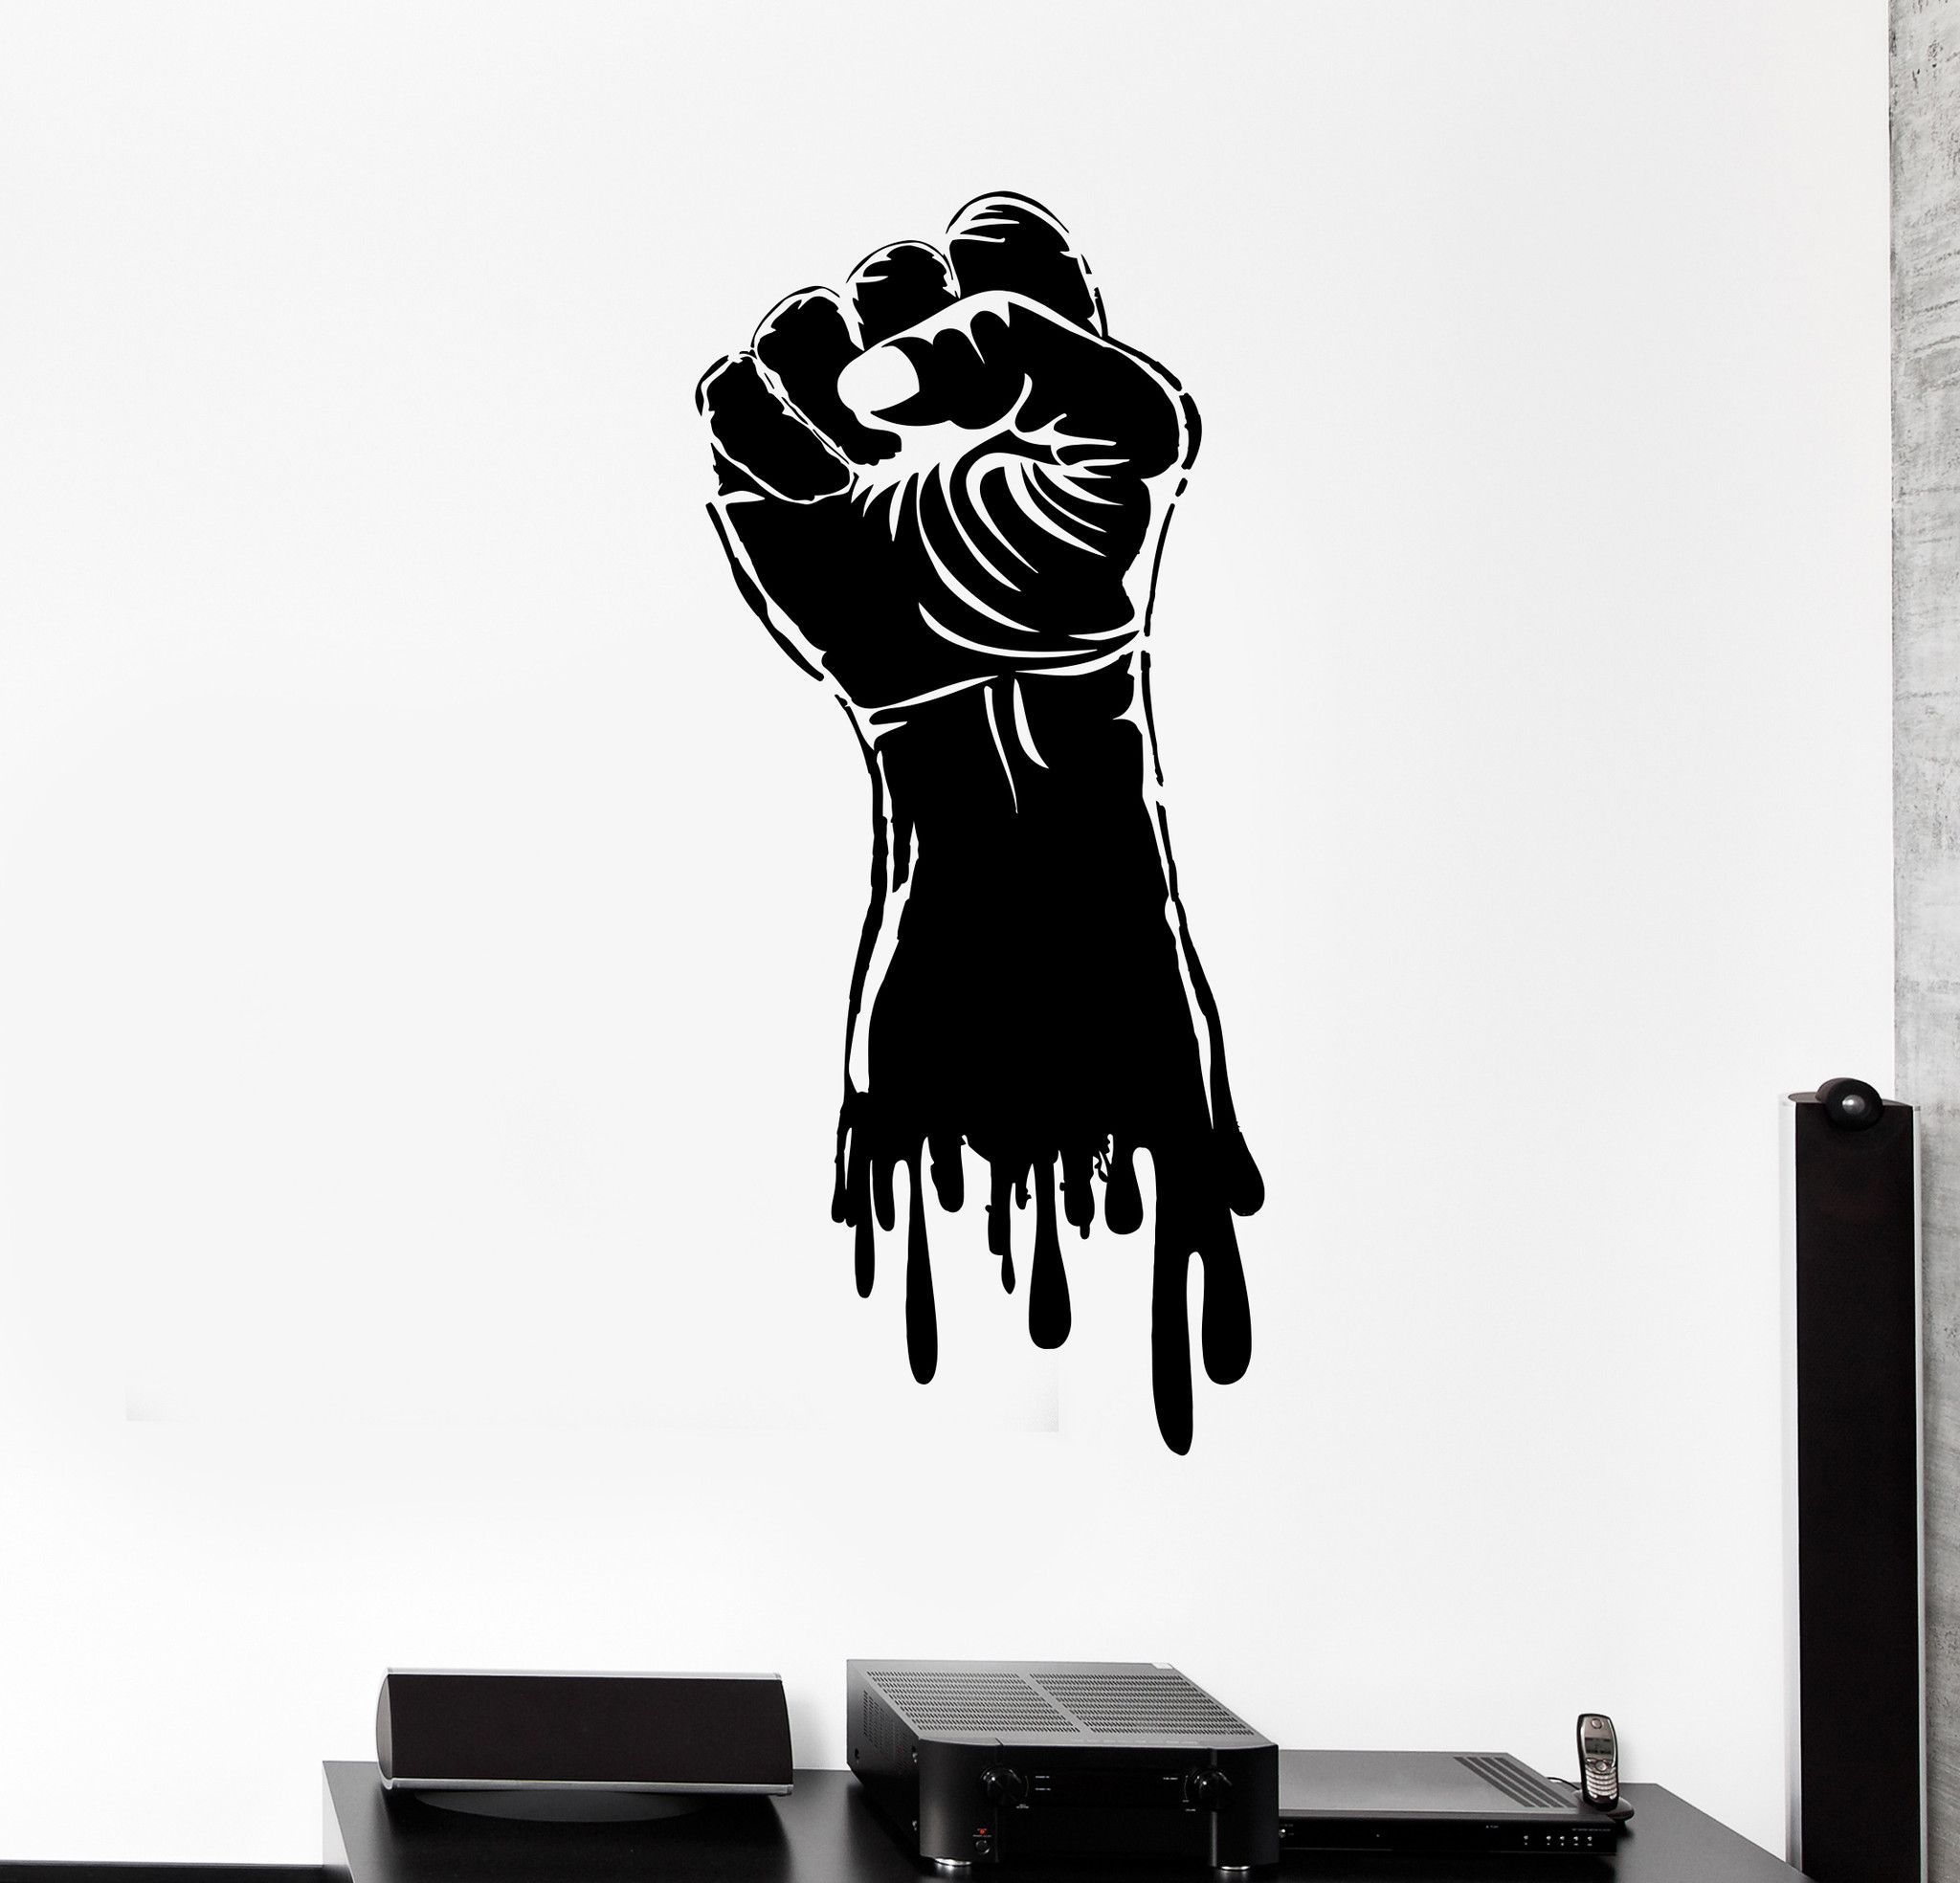 Vinyl wall decal fist hand strength power gym stickers mural 498ig